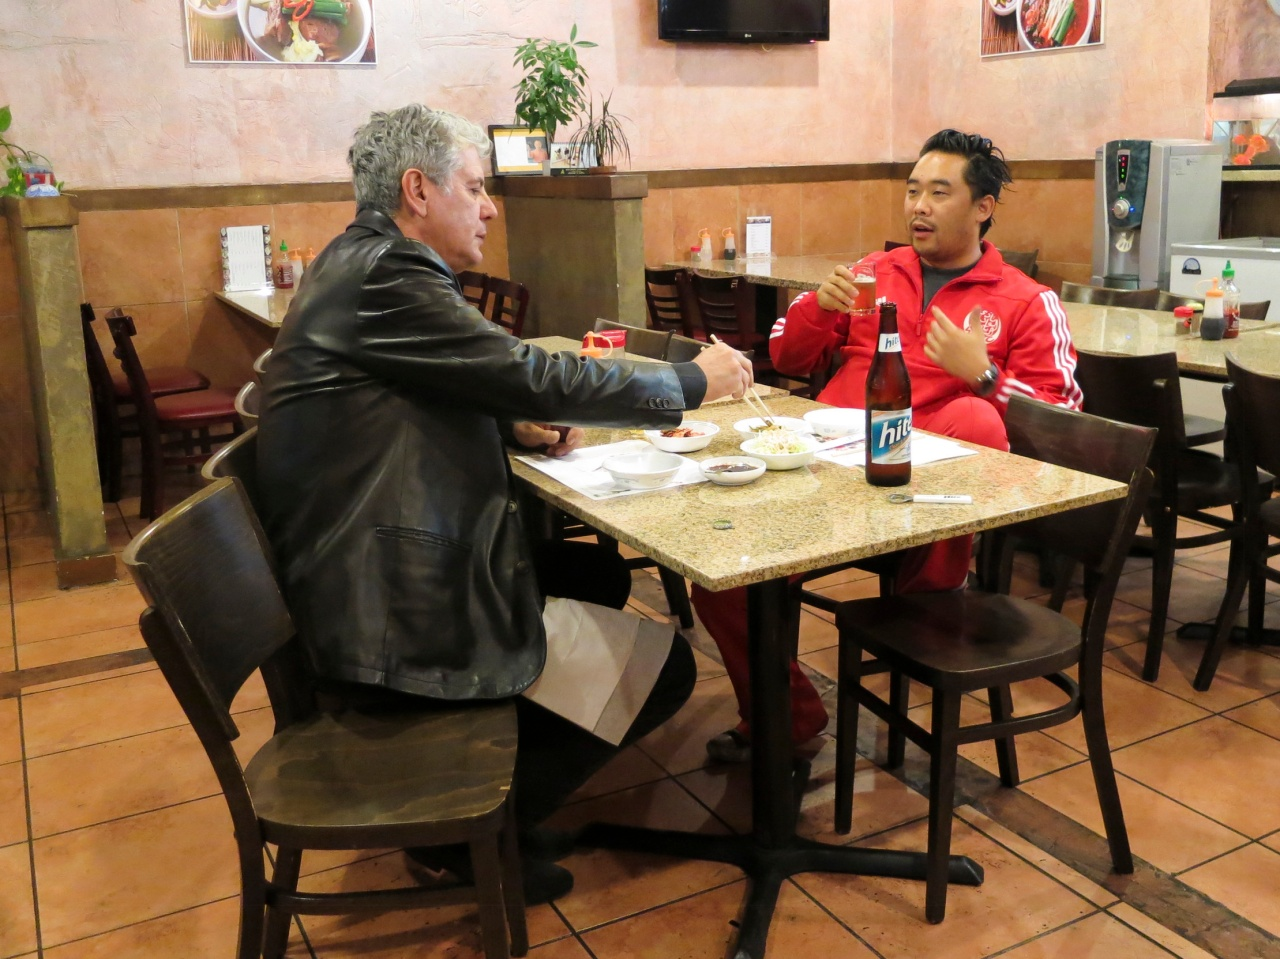 Bourdain eating with David Choe at Myung In Dumplings.